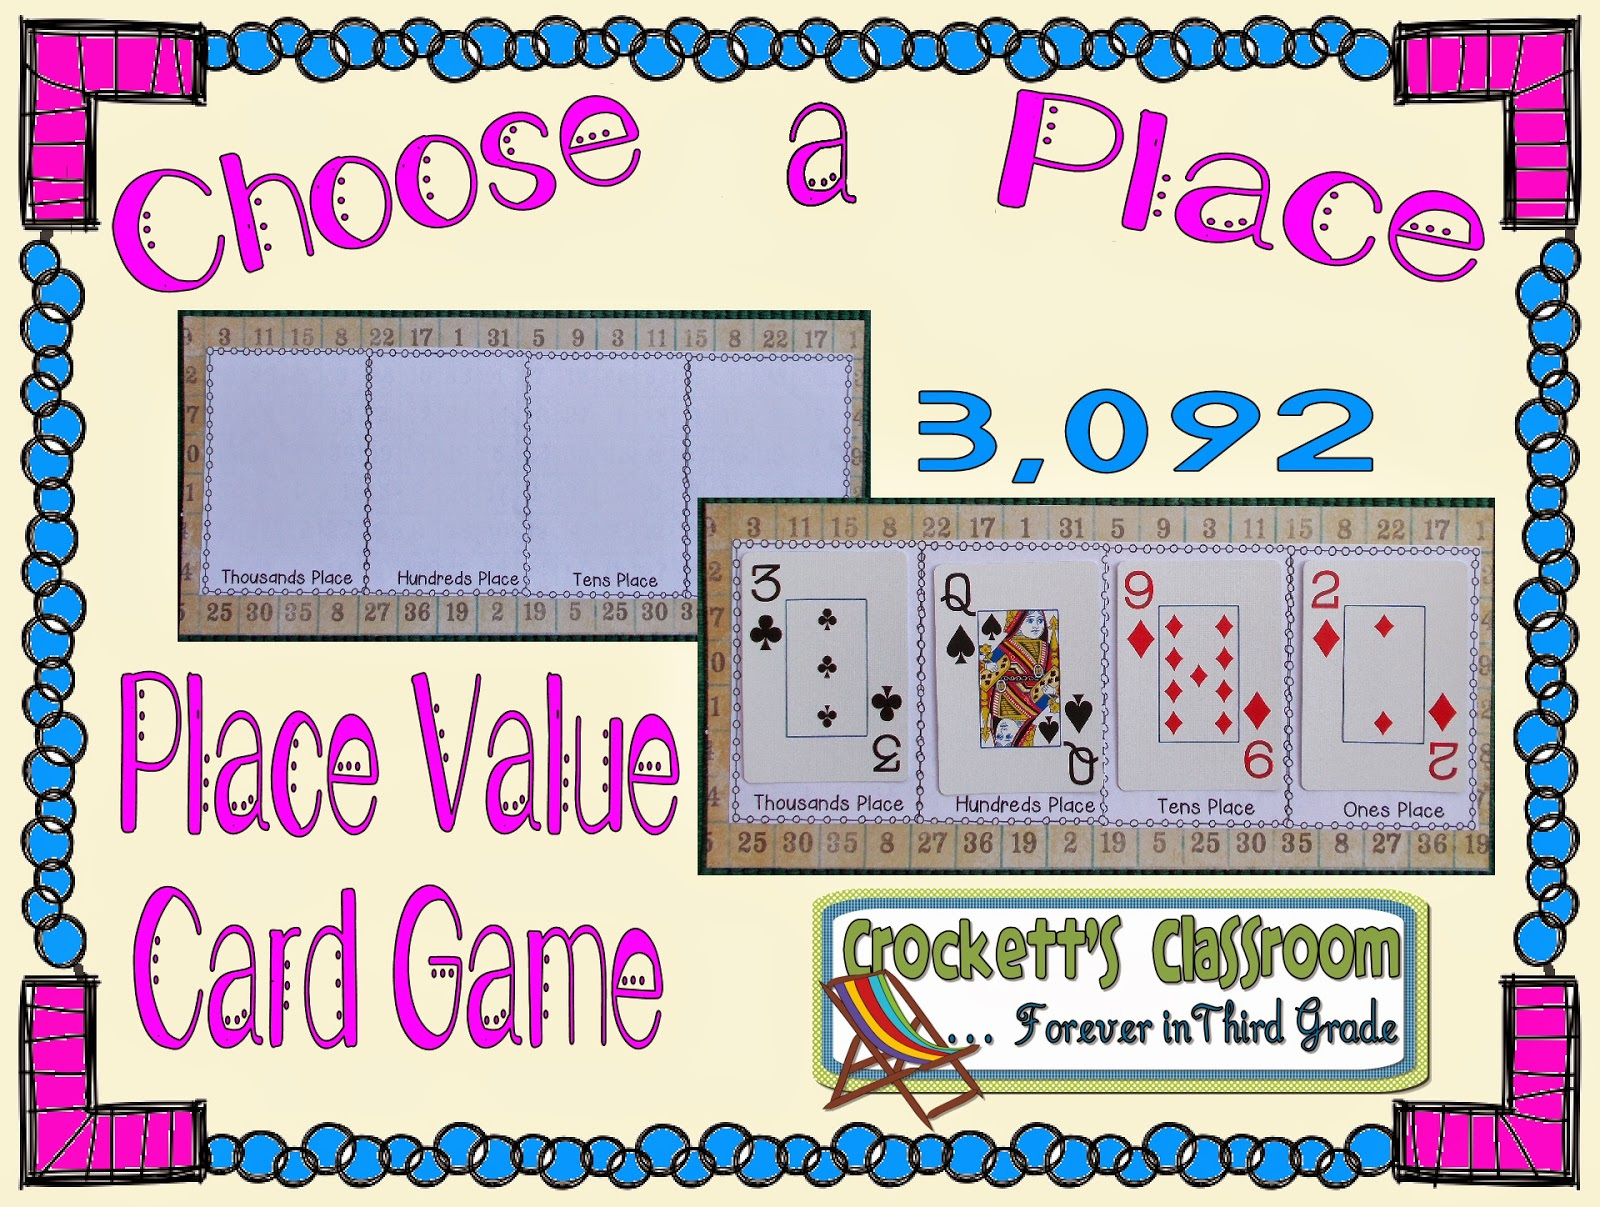 Place value game with cards.  So many ways you could use this!  place value, addition, subtraction, comparing numbers, problem solving, etc.